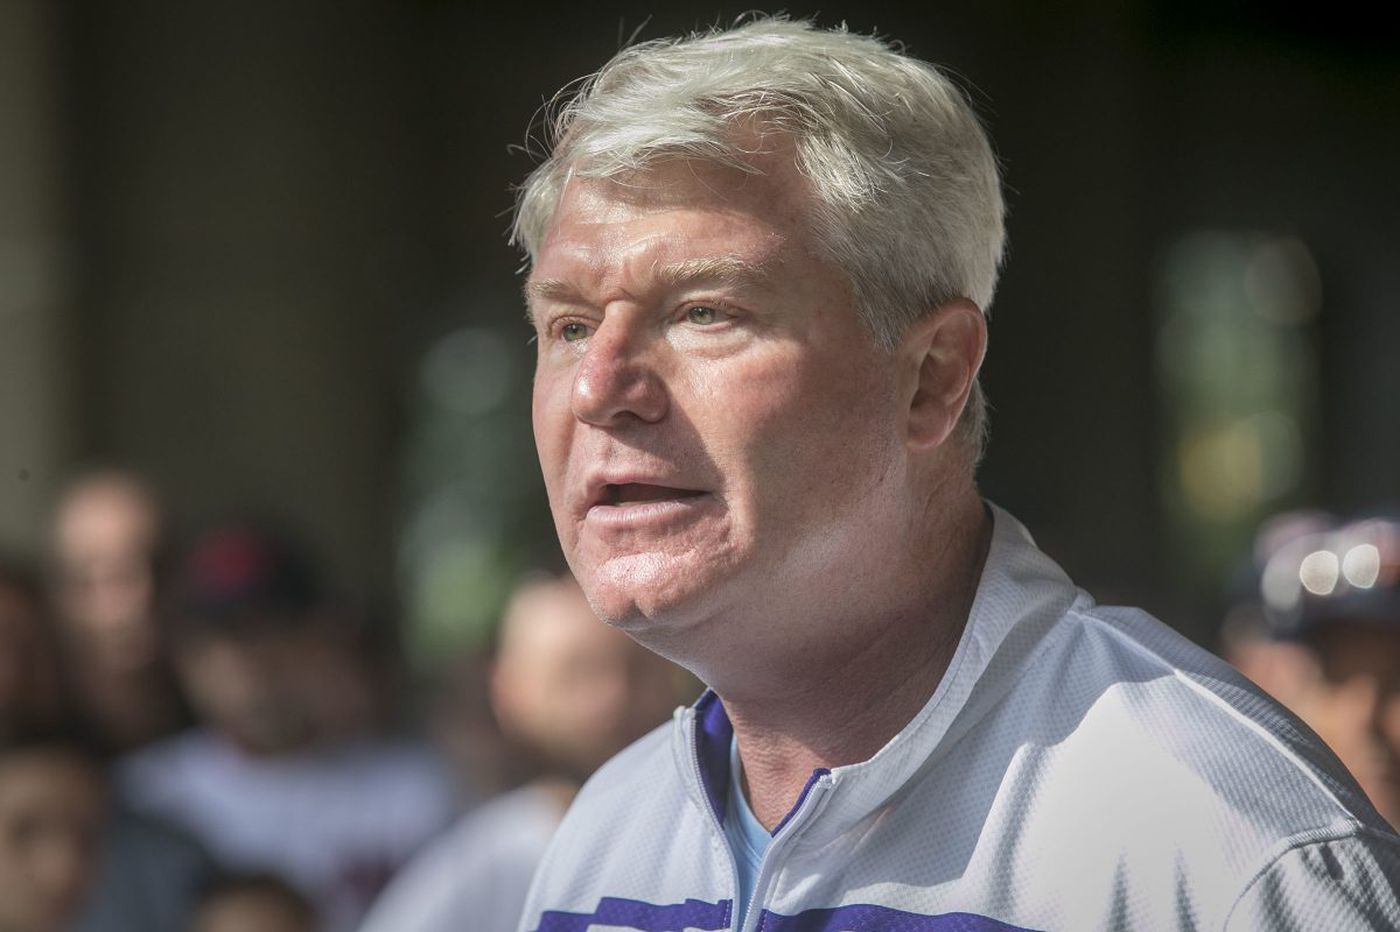 Philly labor leader John 'Johnny Doc' Dougherty, under federal scrutiny, raises more campaign money than ever